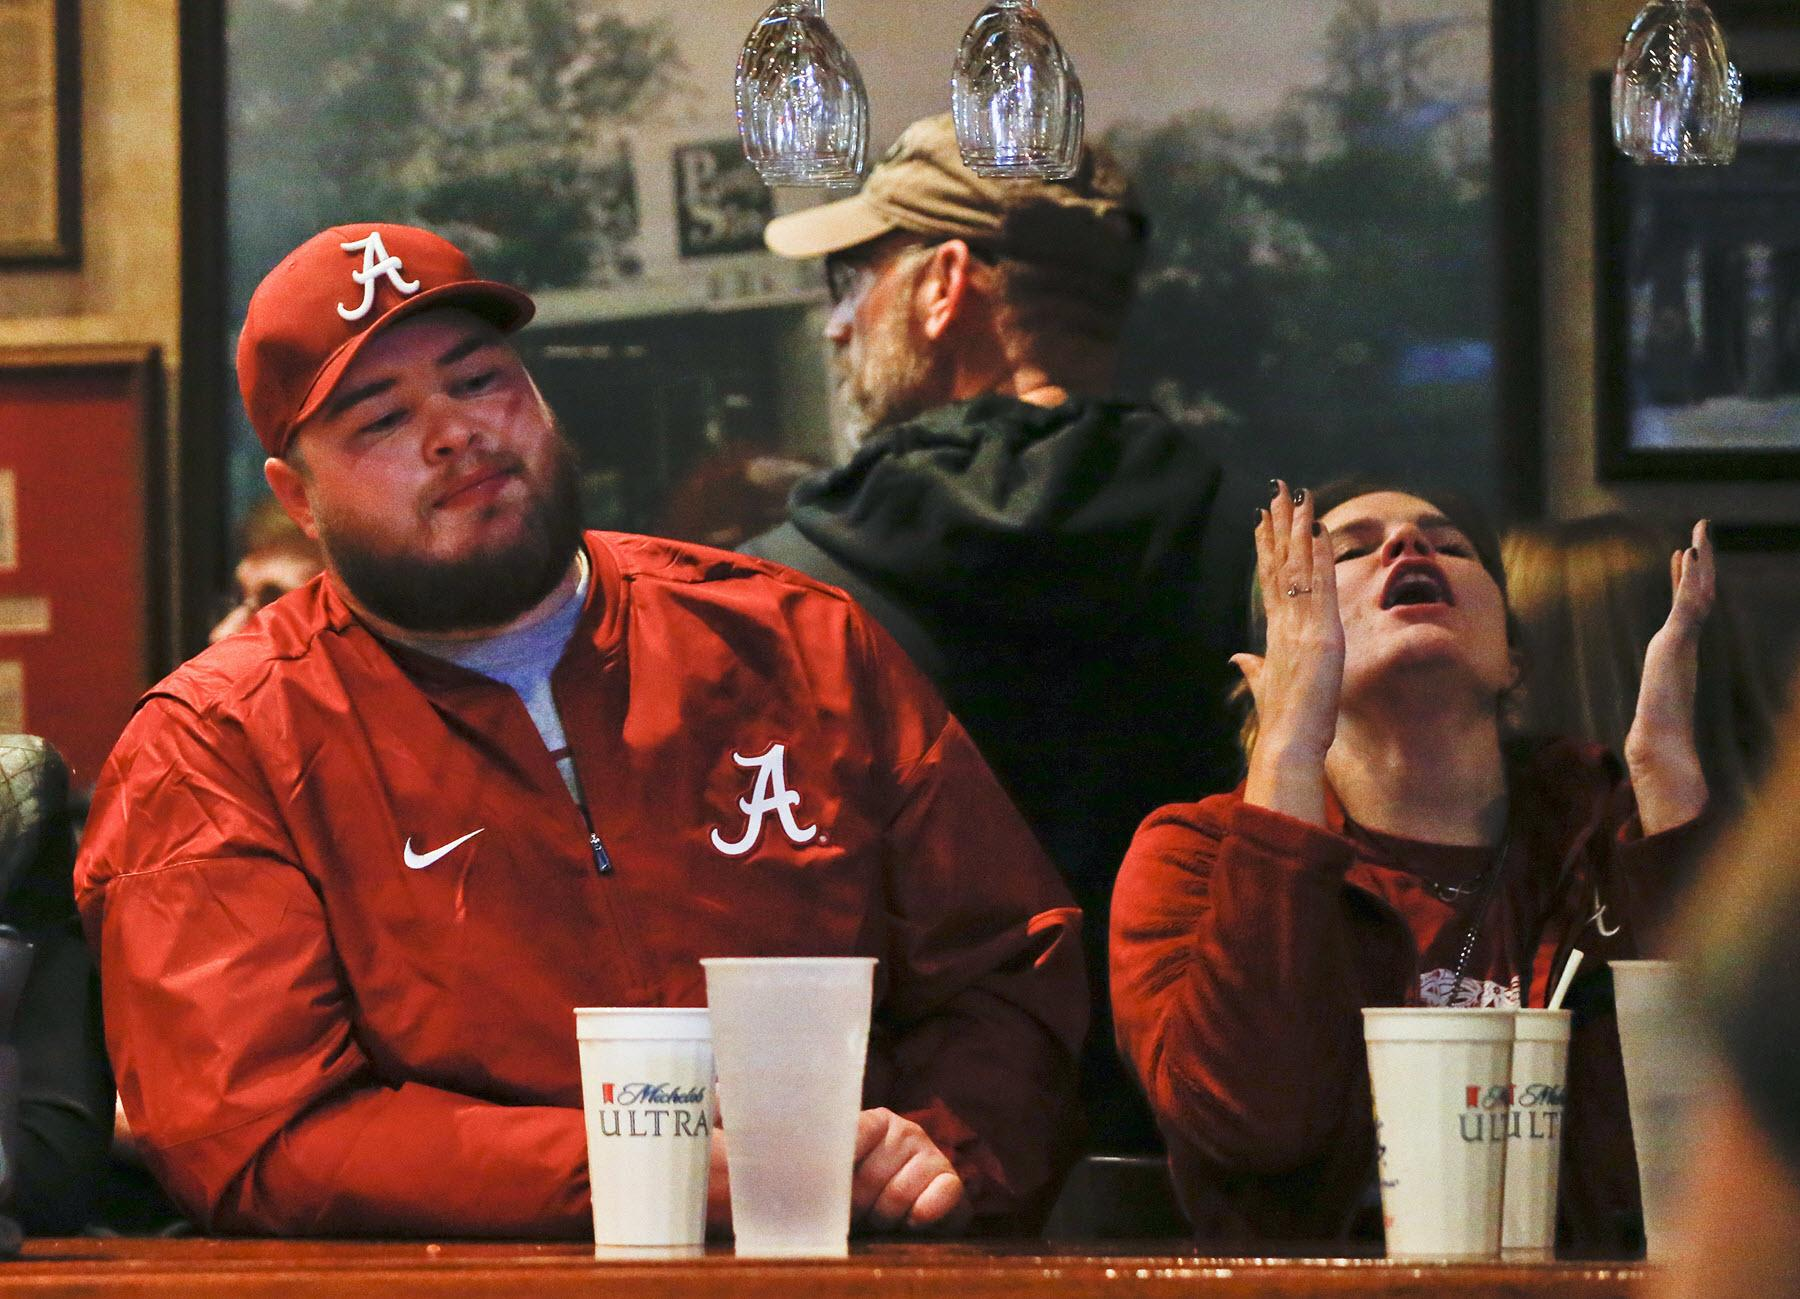 Alabama is suddenly in big trouble and the reason why shows that college football is quirkier than everAlabama Crimson Tide Football - Auburn Tigers Football - College Football Playoff - Georgia Bulldogs Football - Intermittent Fasting - Iron Bowl - SEC - SEC Championship Game - South Carolina Gamecocks Football